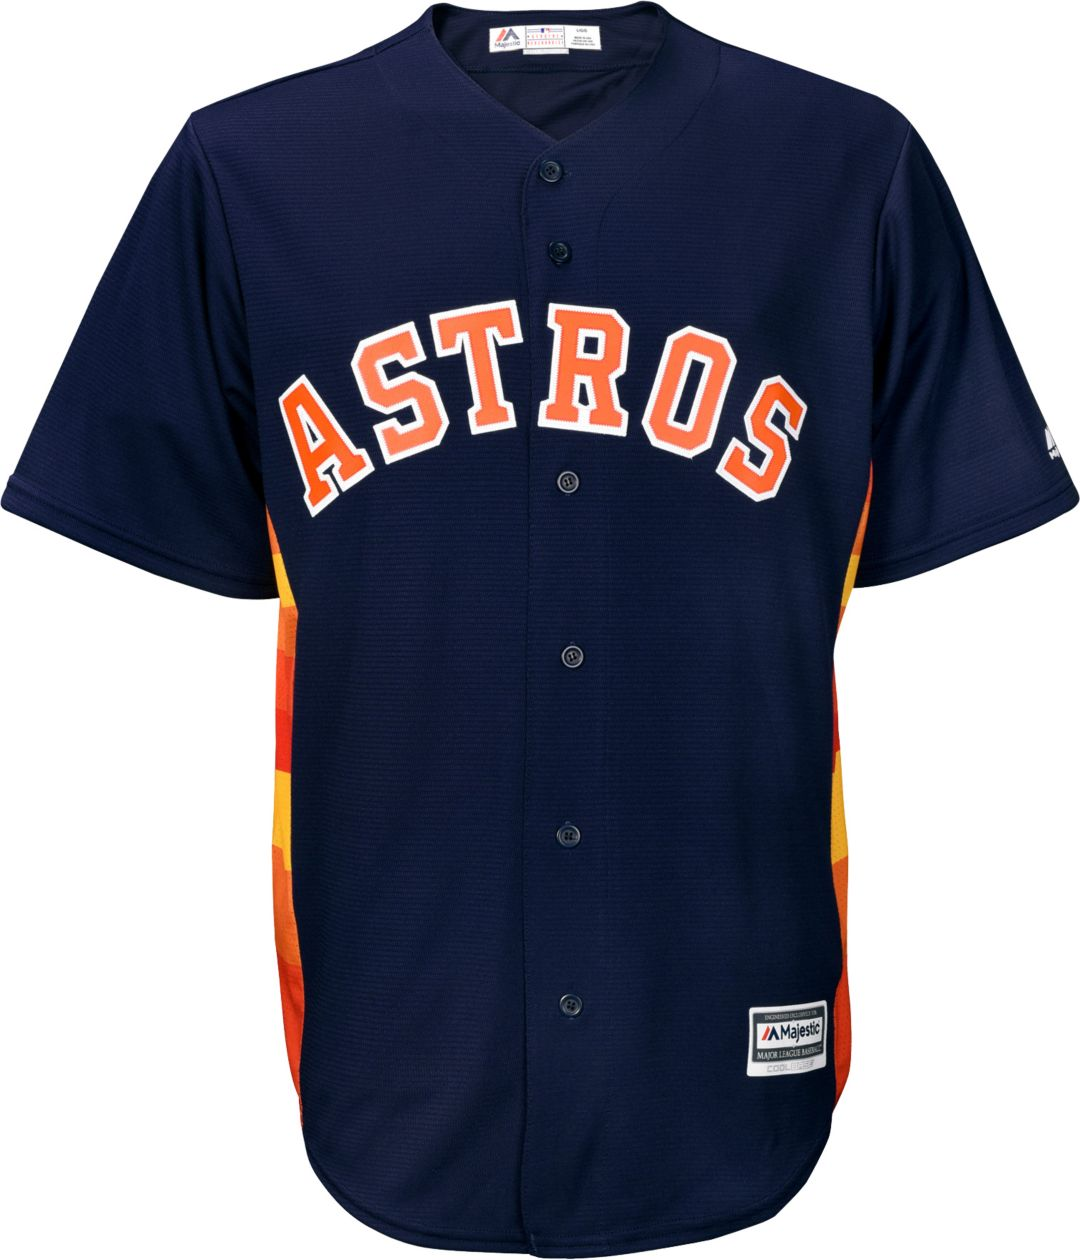 Astros Youth Astros Jersey Jersey Astros Youth Youth Youth Jersey Astros Astros Jersey Youth|In The Sport Towards The 49ers